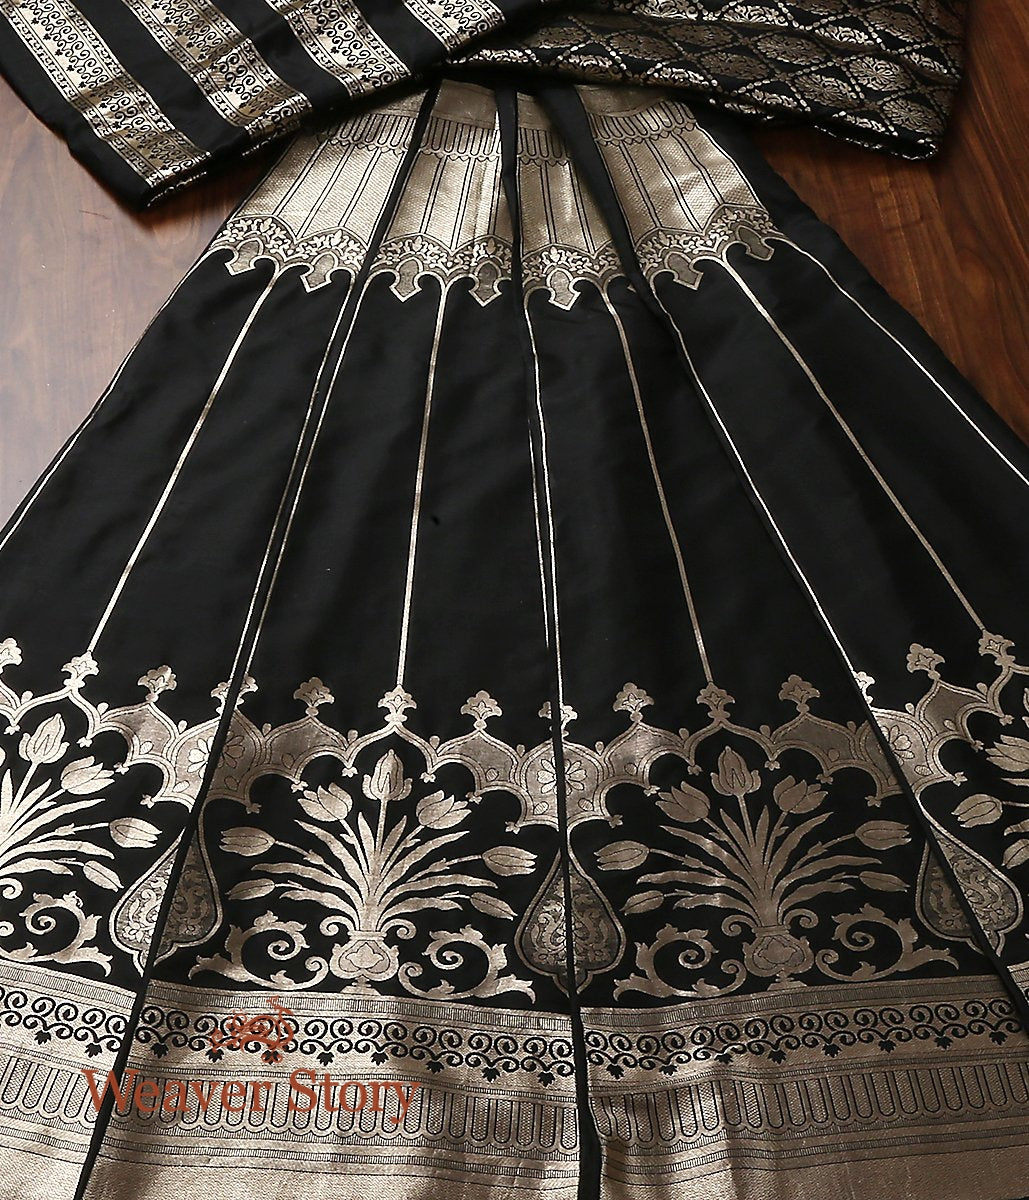 Handwoven Banarasi Kalidar Lehenga in Black with Gold Zari